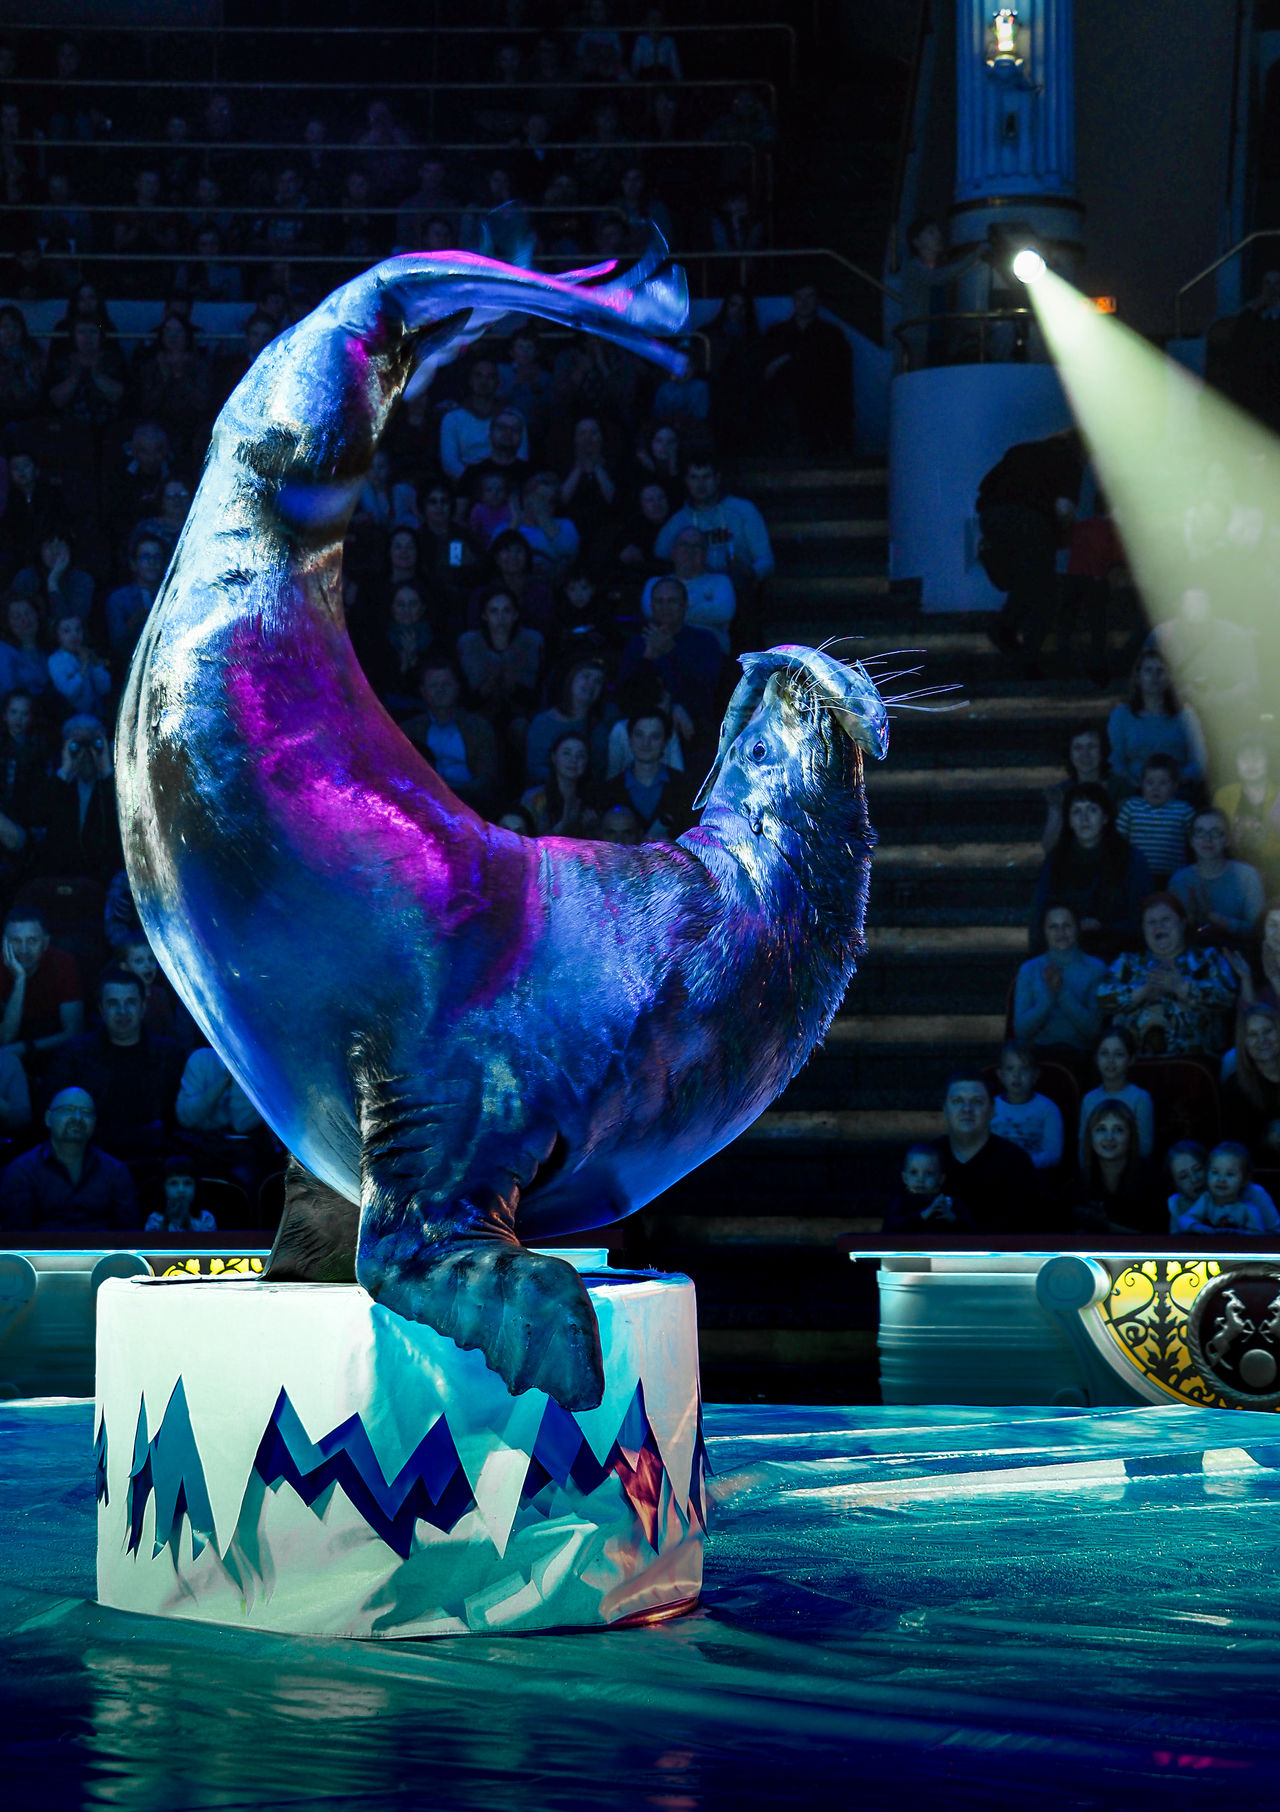 Russia, Moscow, circus, Russian circus, Nikulin Circus, sea lion Adult Adults Only Arts Culture And Entertainment Circus Indoors  Moscow Nikulin Circus Occupation One Person People Performance Performing Arts Event Representing Russia Russian Circus Sea Lion